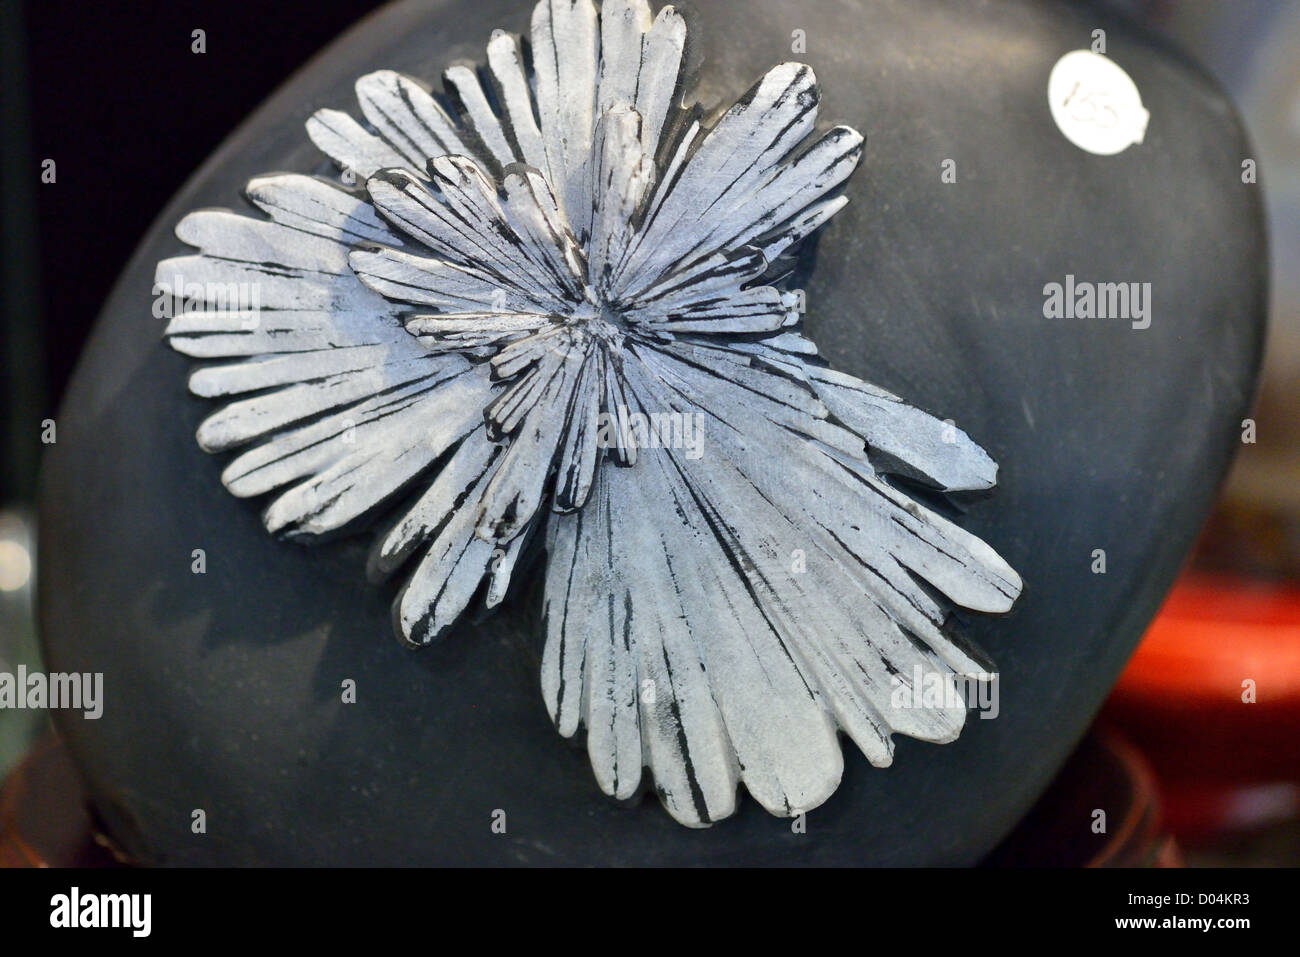 Specimen of chrysanthemum stone, an aggretage of mineral celestine from Liuyang, Hunan Province, China. Stock Photo